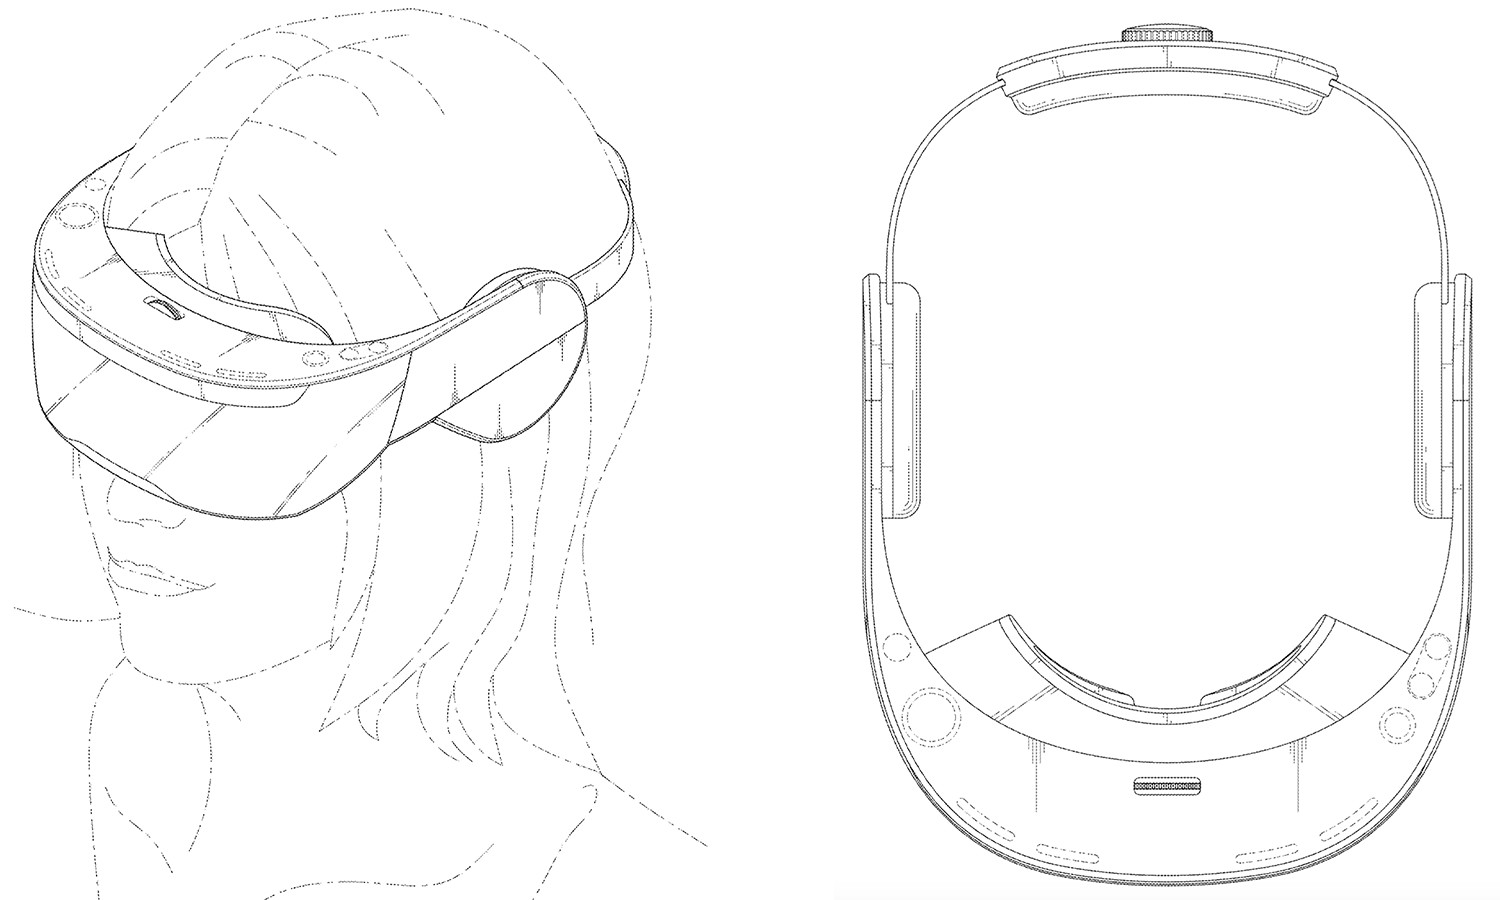 New Published Patent Designs Show A Different Look To The Upcoming LG VR Headset